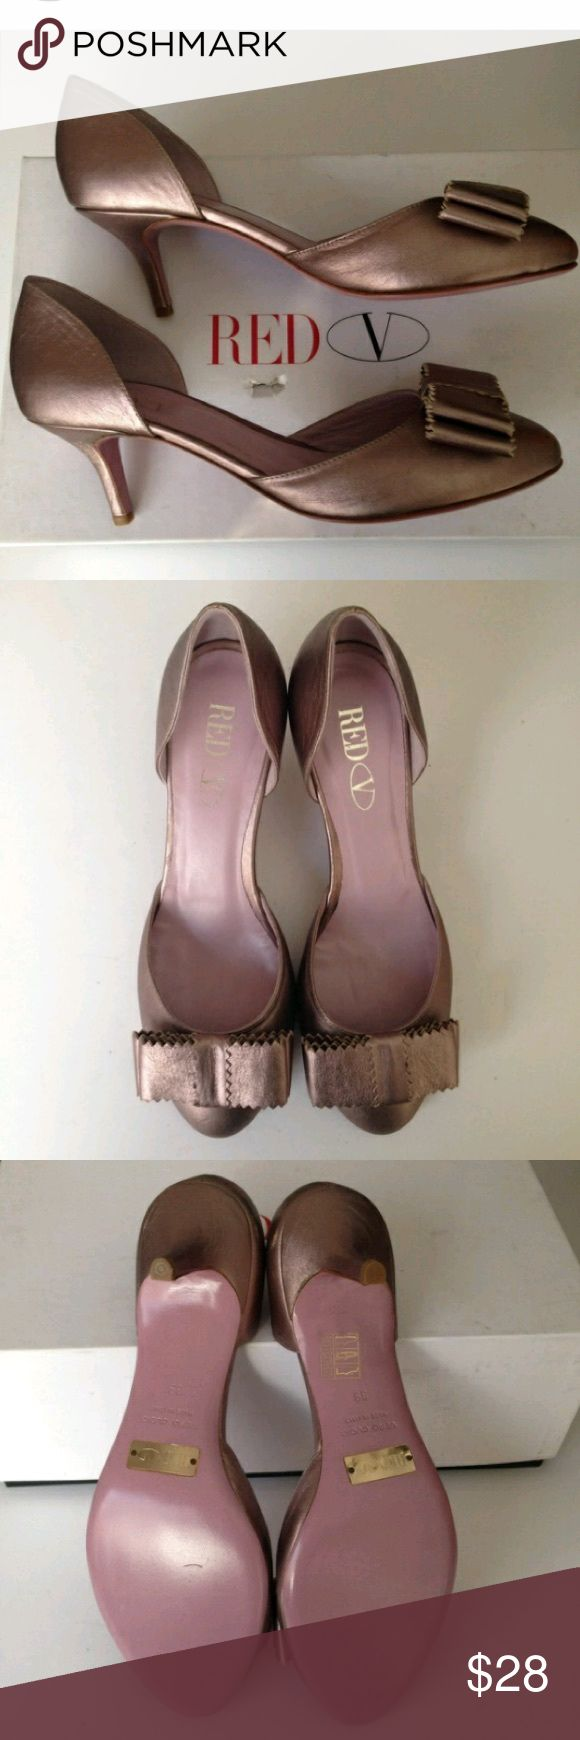 Red Valentino Leather Silver Grey Kitten Heels 8.5 Good used condition. Bottoms are far more scuffed than shown but otherwise good. RED Valentino Shoes Heels